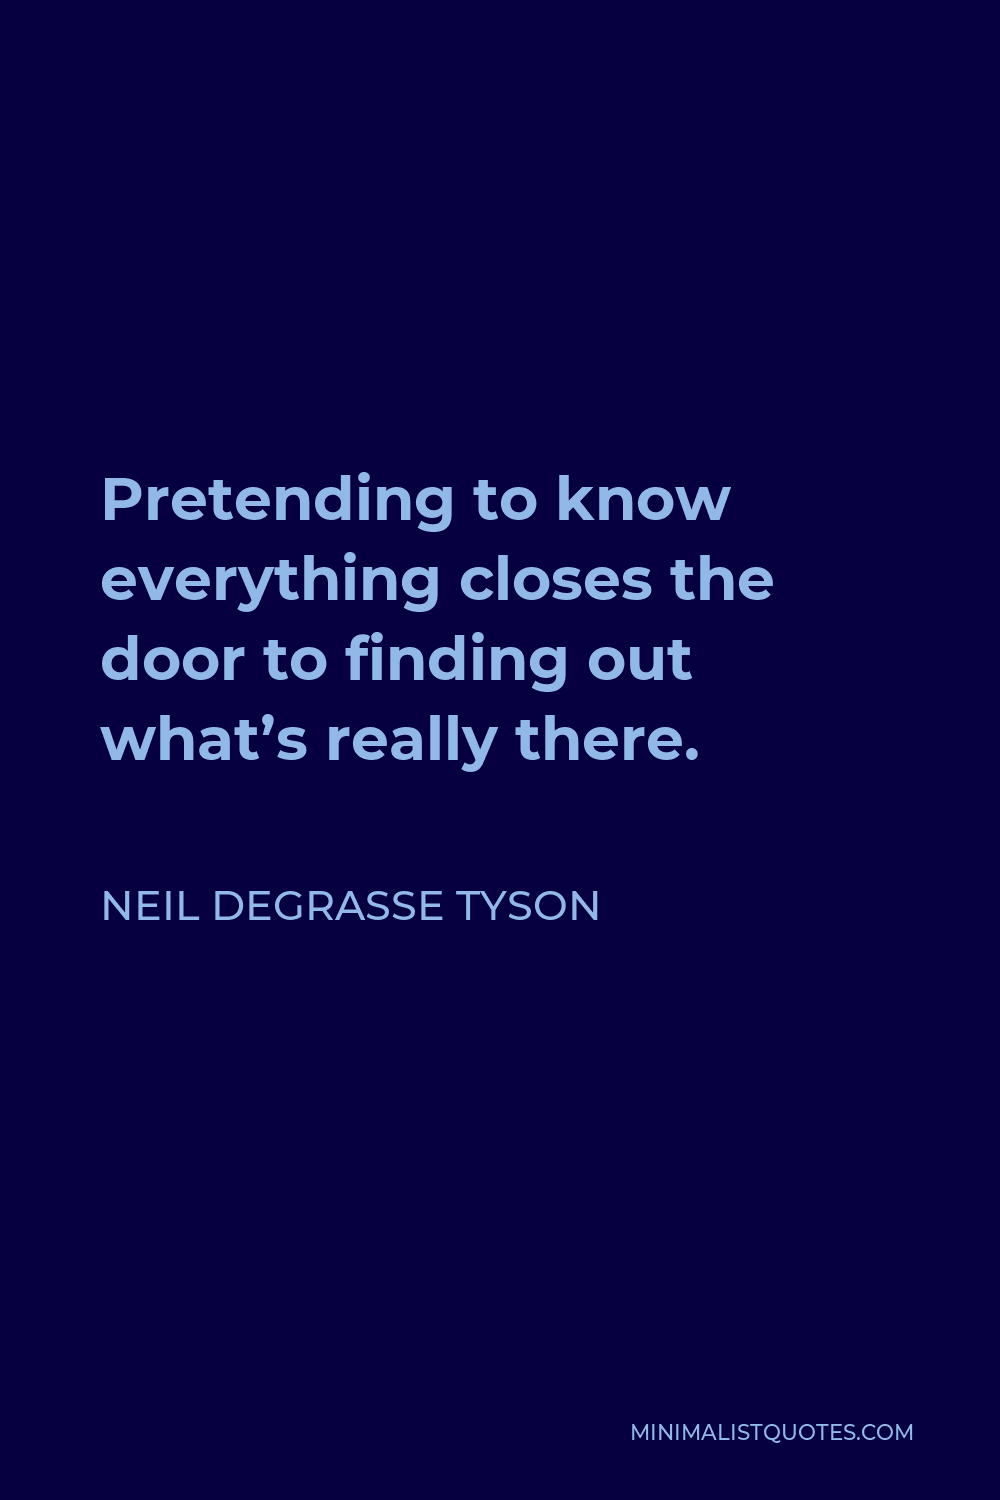 Neil deGrasse Tyson Quote - Pretending to know everything closes the door to finding out what's really there.